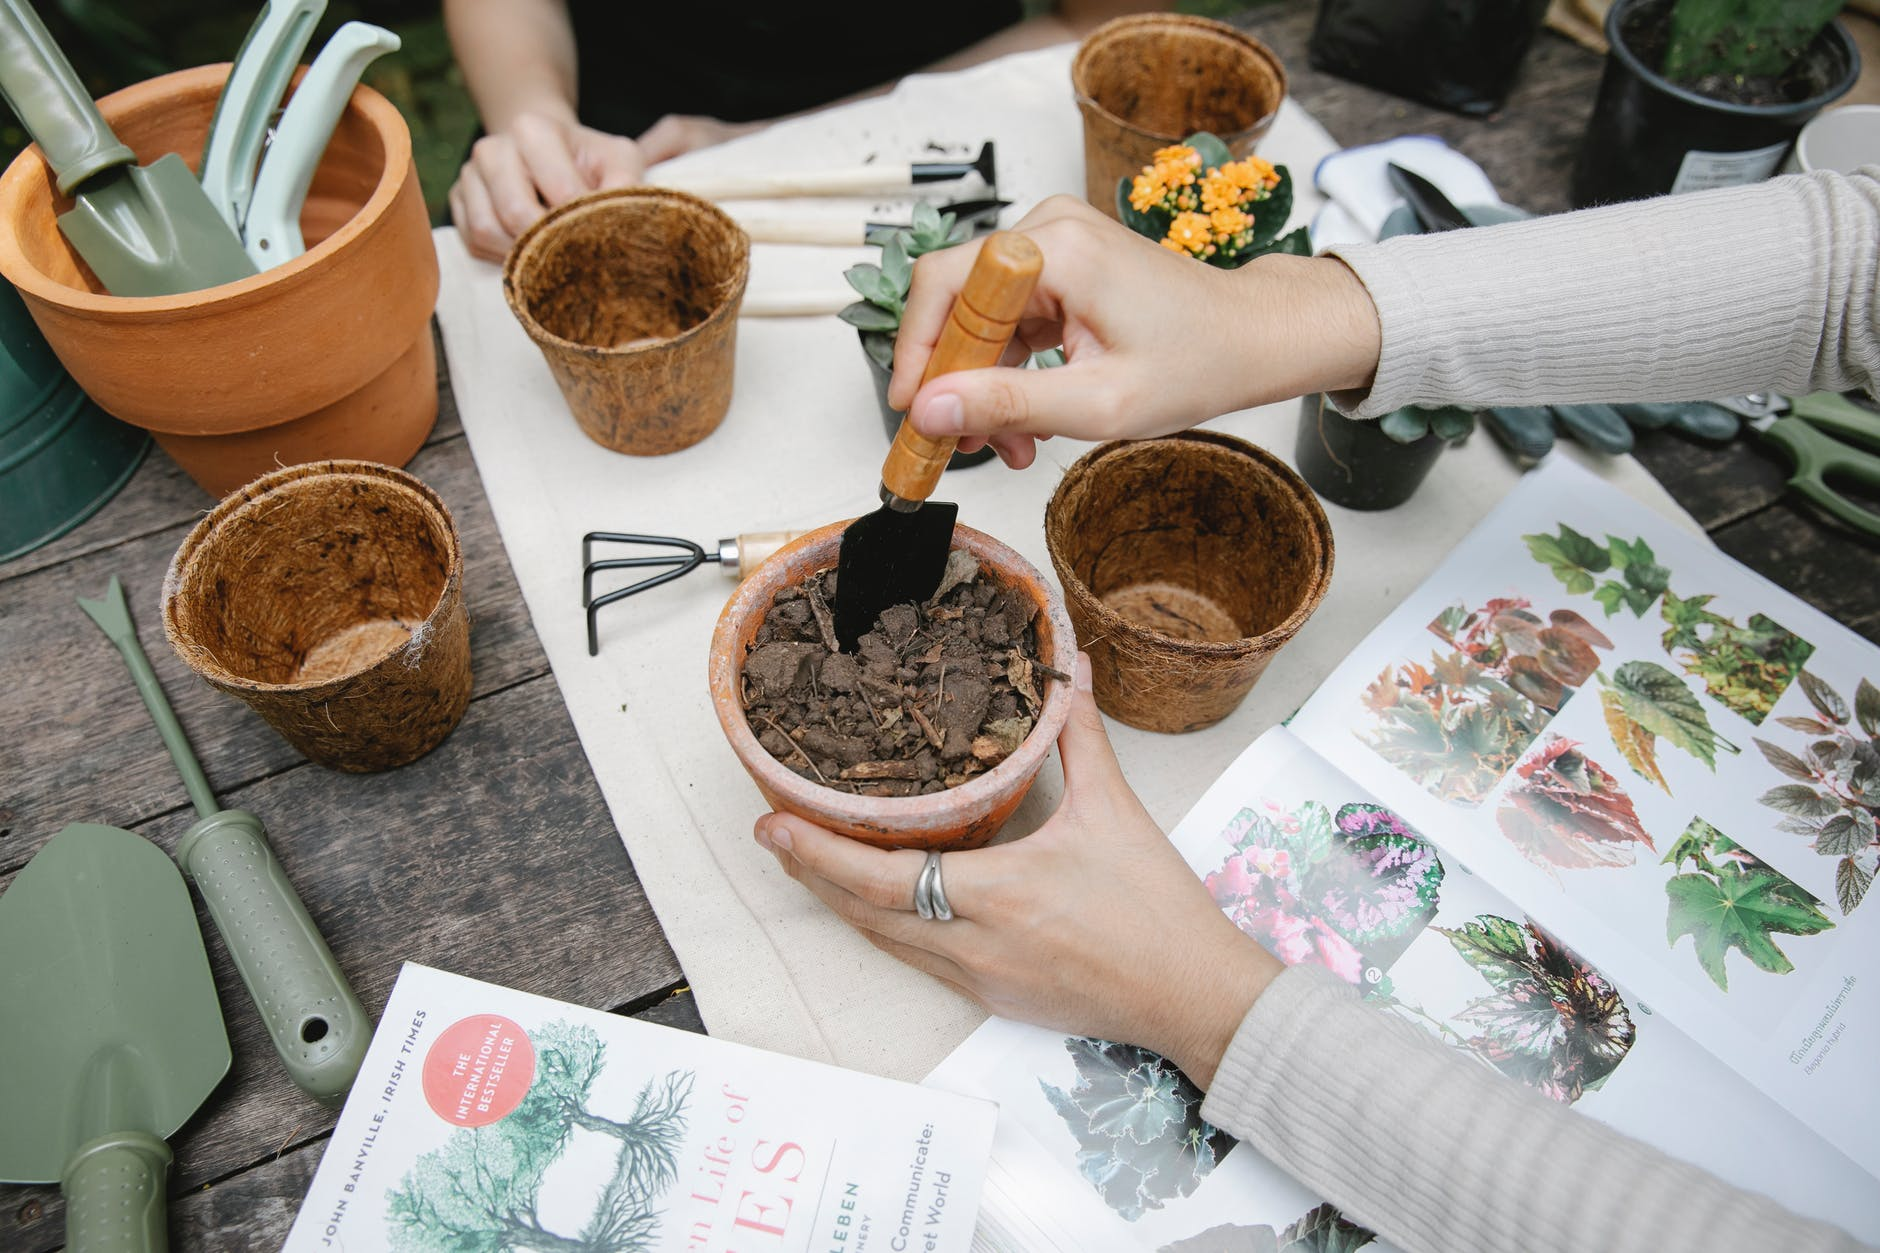 woman mixing soil in peat pot for planting flowers